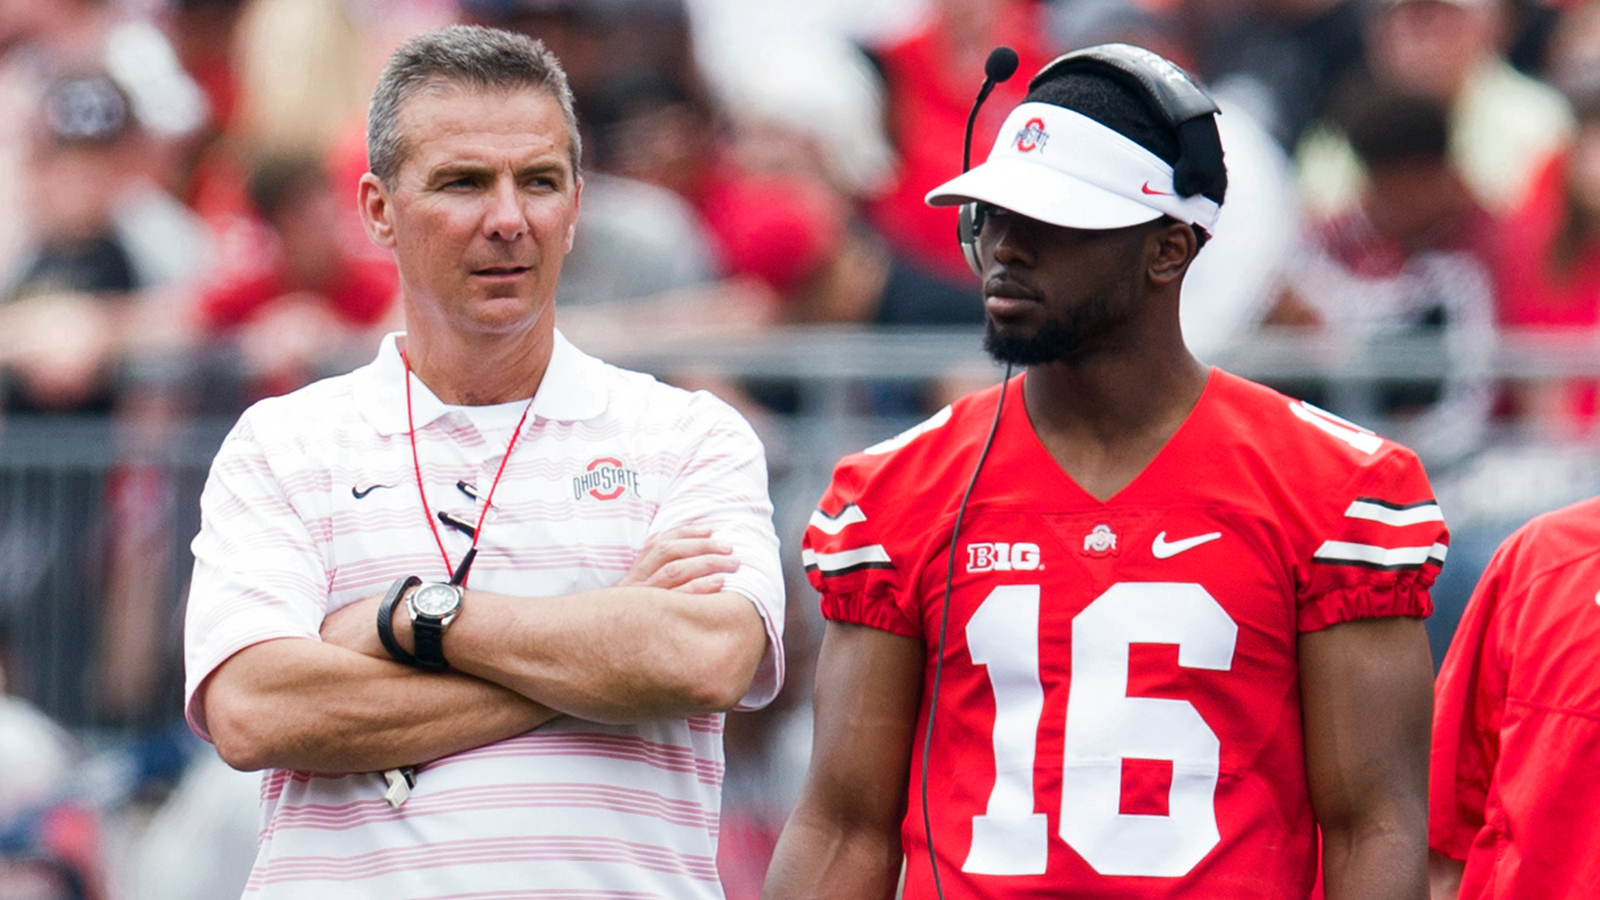 Apr 18, 2015; Columbus, OH, USA; Ohio State Buckeyes quarterback Braxton Miller (5) head coach Urban Meyer and quarterback J.T. Barrett (16) talk on the field during the Ohio State Spring Game at Ohio Stadium. The Gray team won the game 17-14. Mandatory Credit: Greg Bartram-USA TODAY Sports